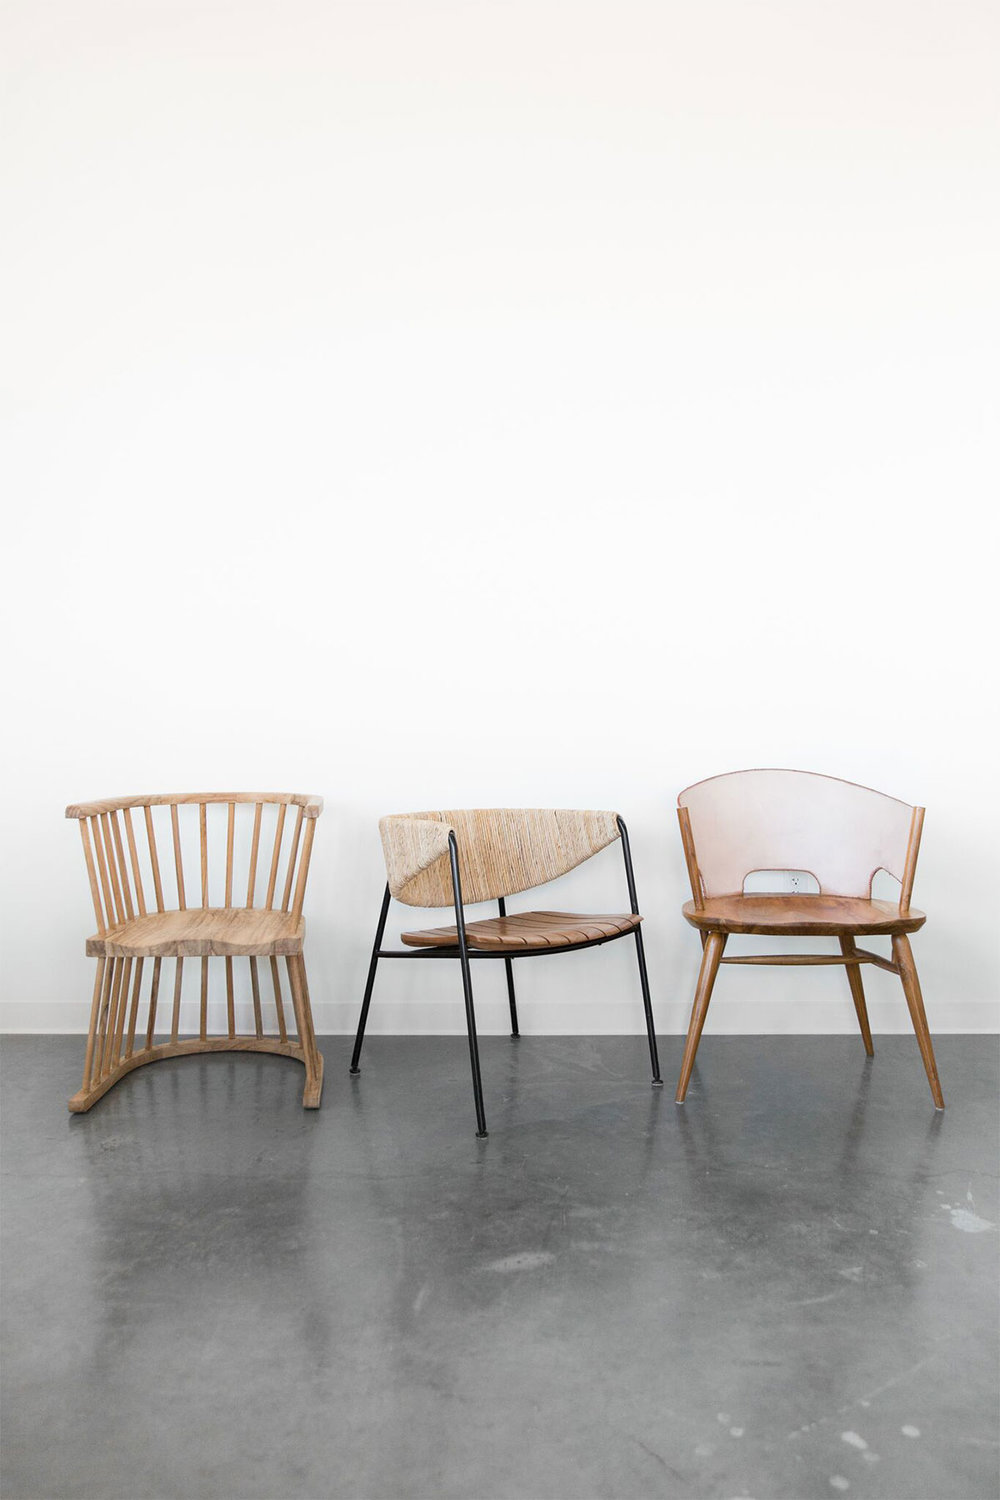 Beautiful natural sculptural chairs from McGee & Co. | mcgeeandco.com